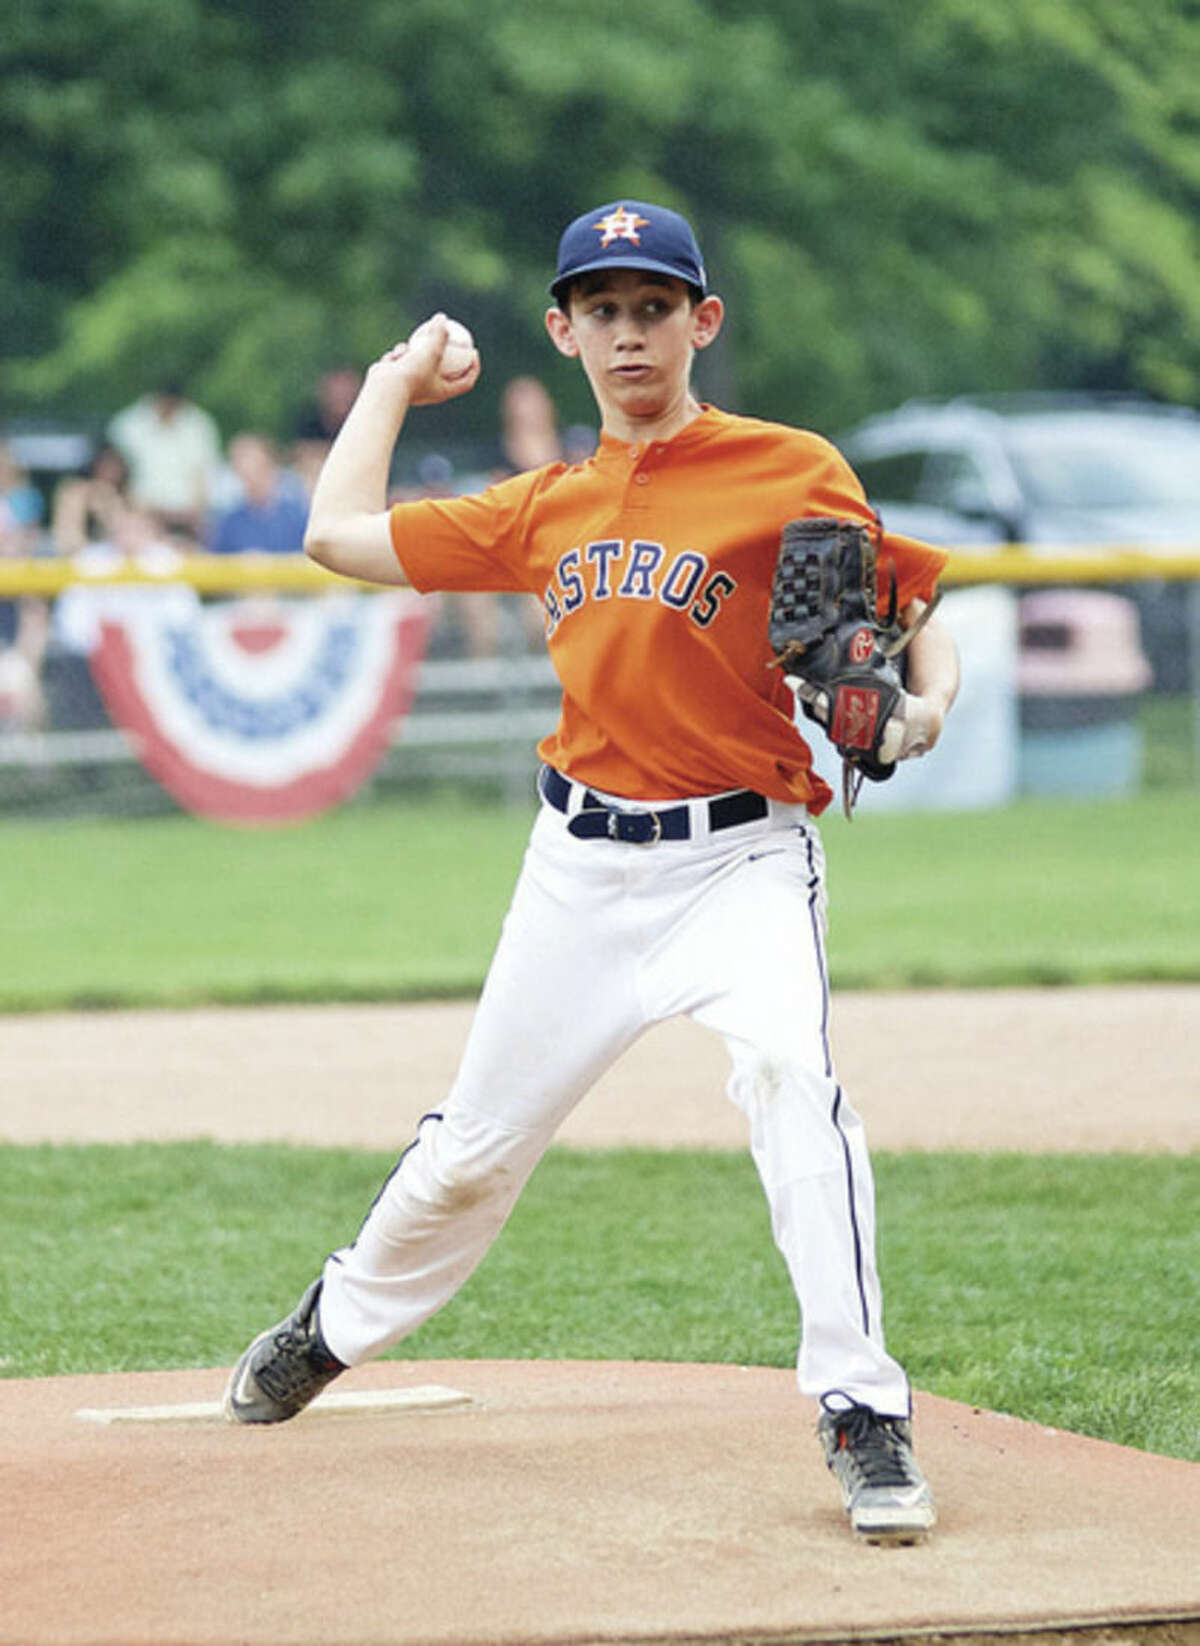 Hour photo/Danielle Calloway Astros pitcher Andrew Travers about to throw a strike during the Wilton Little League Majors Division Championship game against the Giants on Thursday evening at Bill Terry Field in Wilton.